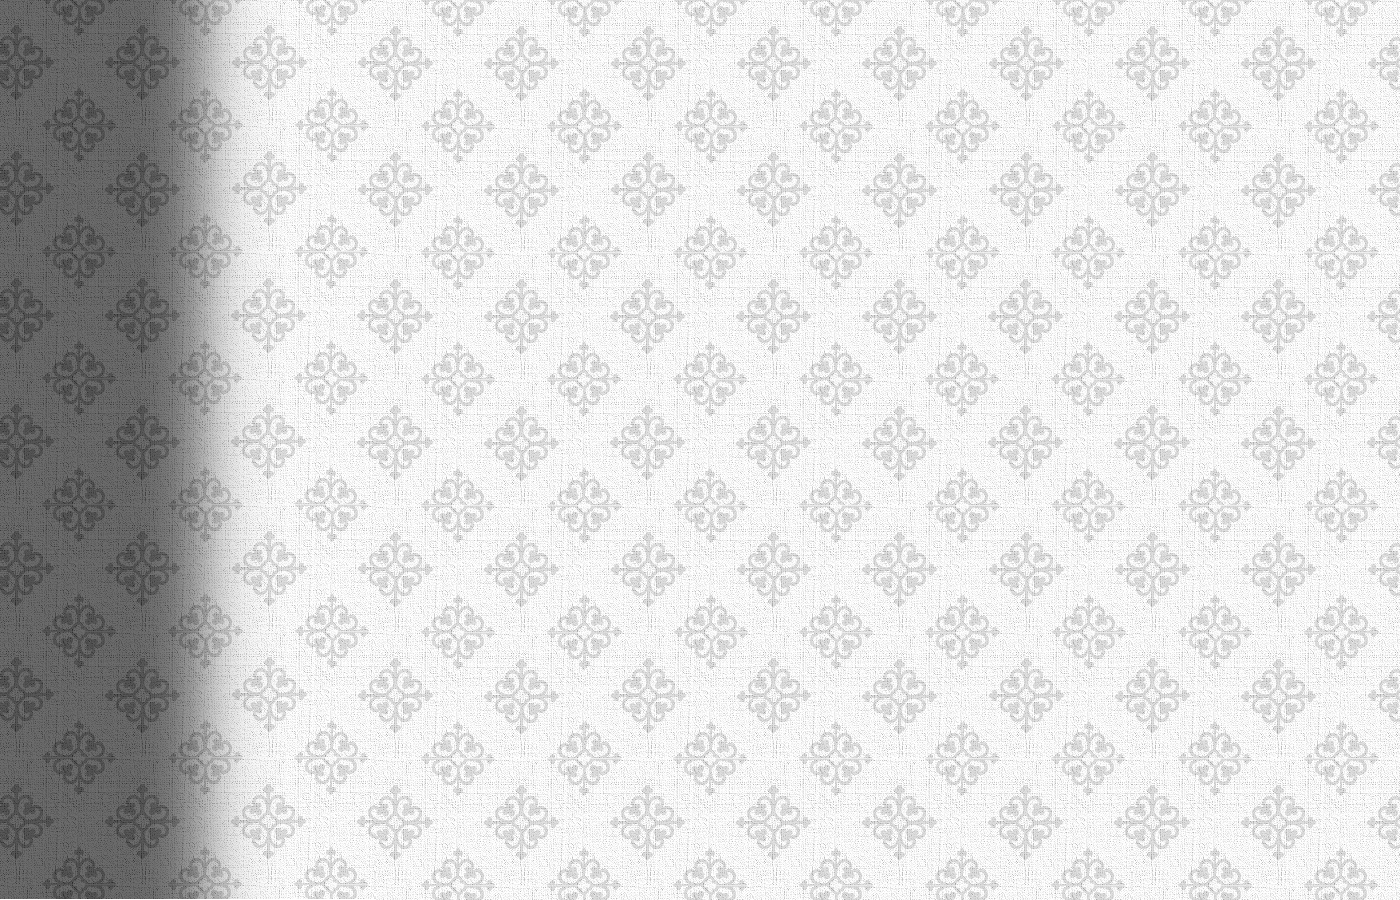 Clear White Background Pattern 135.33 Kb